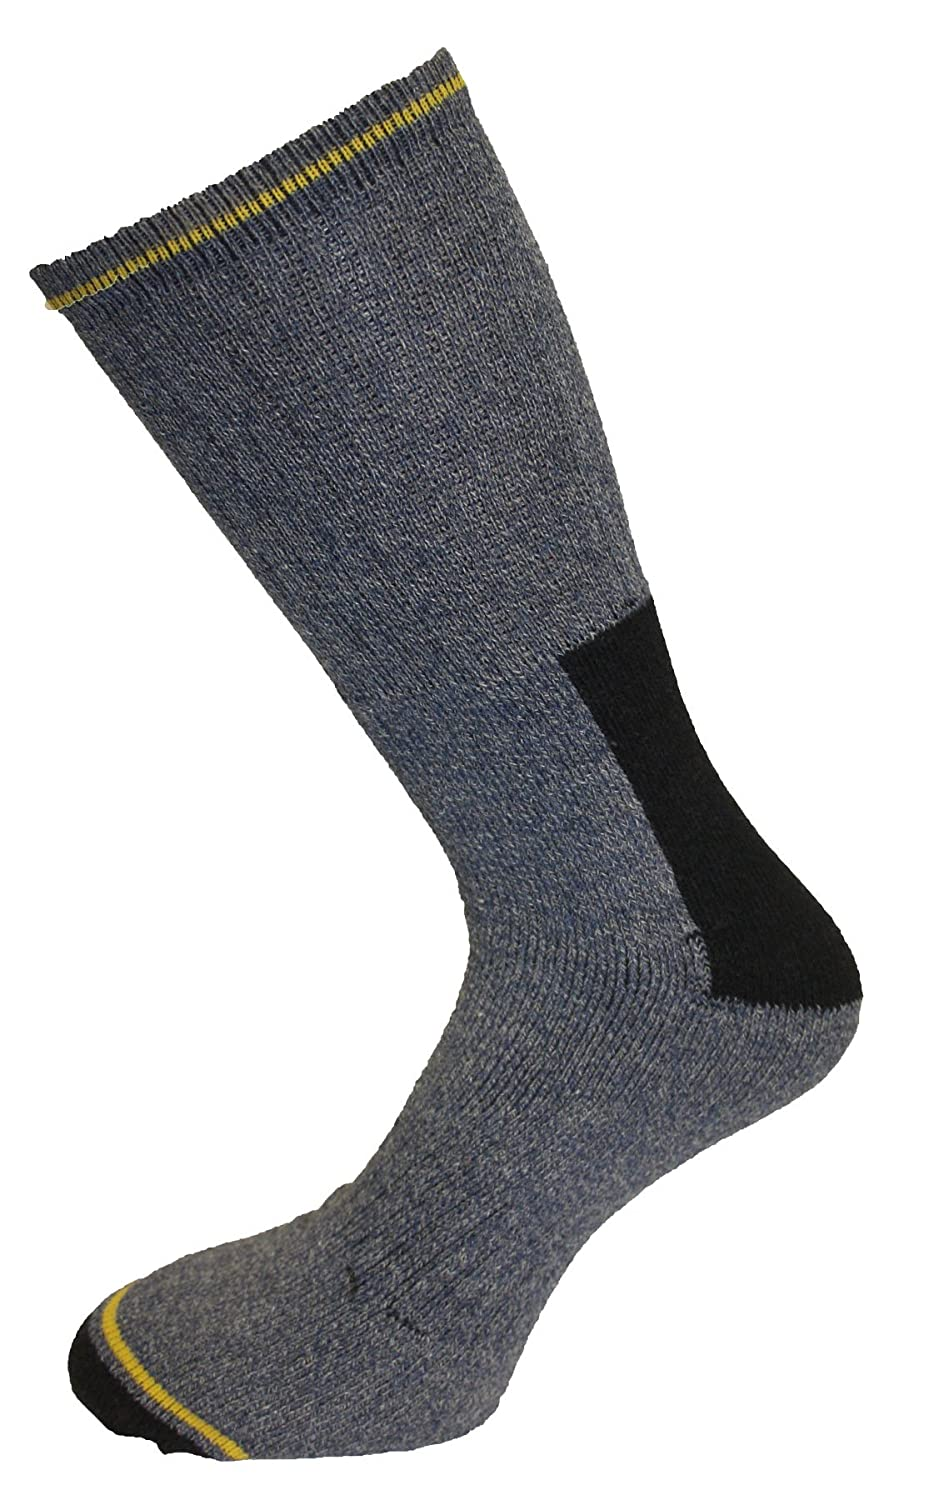 10 Pairs Mens Heavy Duty Casual Or Work Socks Size 6-11 Cotton Rich - Cushioned Support ZZ-MSOX-1265-6pk-6-11